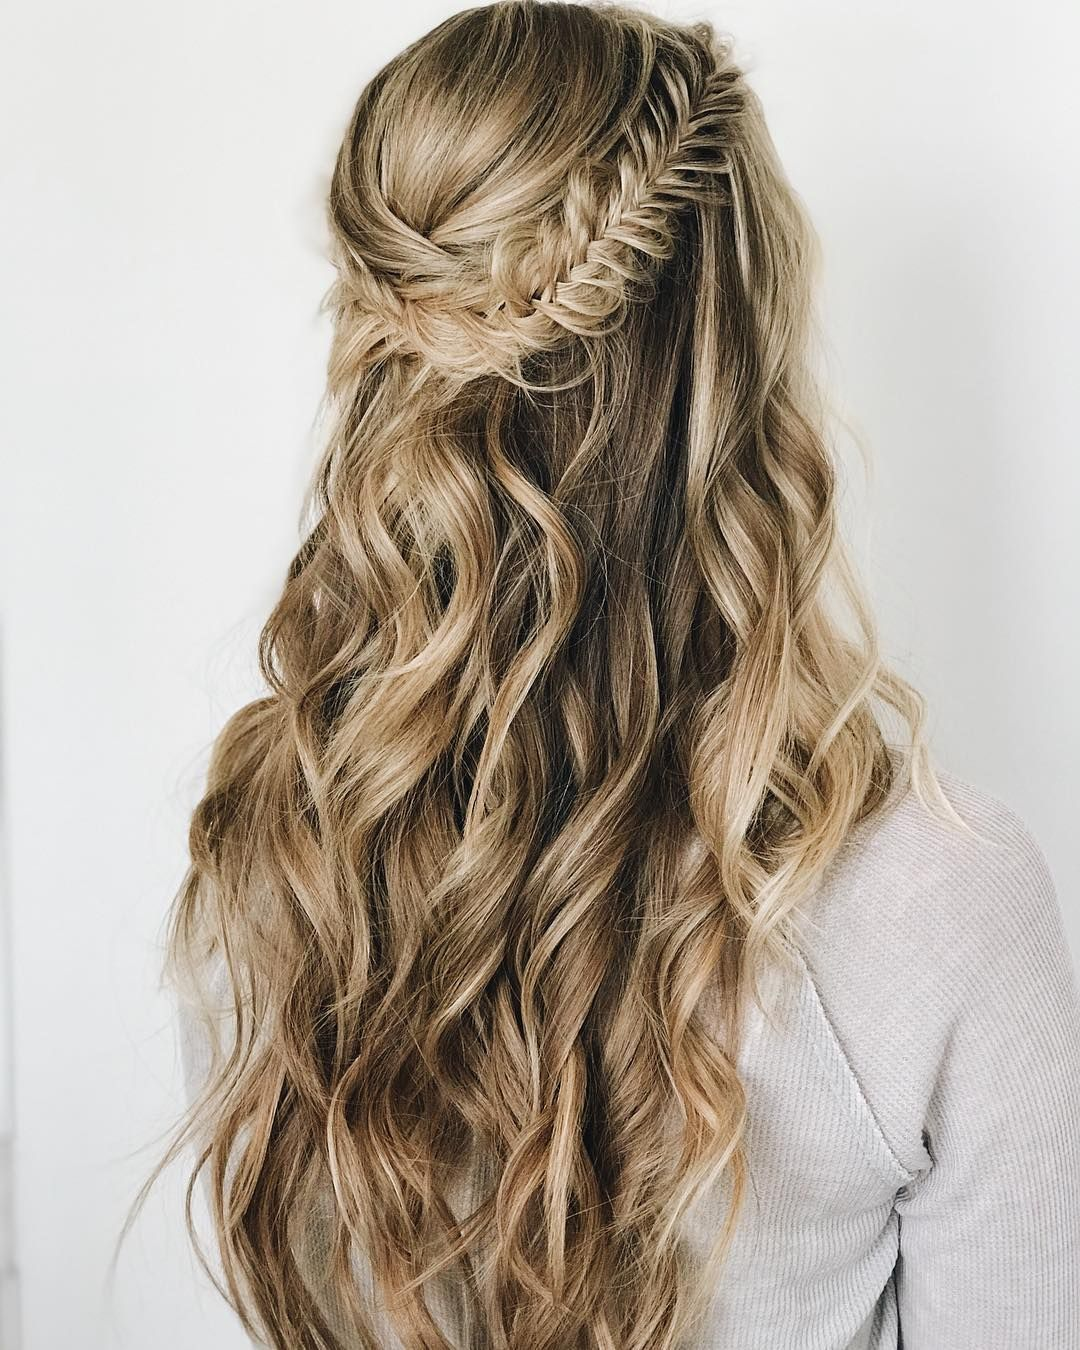 Braids Half Up Half Down Hairstyle Boho Hairstyle Updo Wedding Hairstyles Hair Hairstyles Hair Styles Down Hairstyles Wedding Hair Down